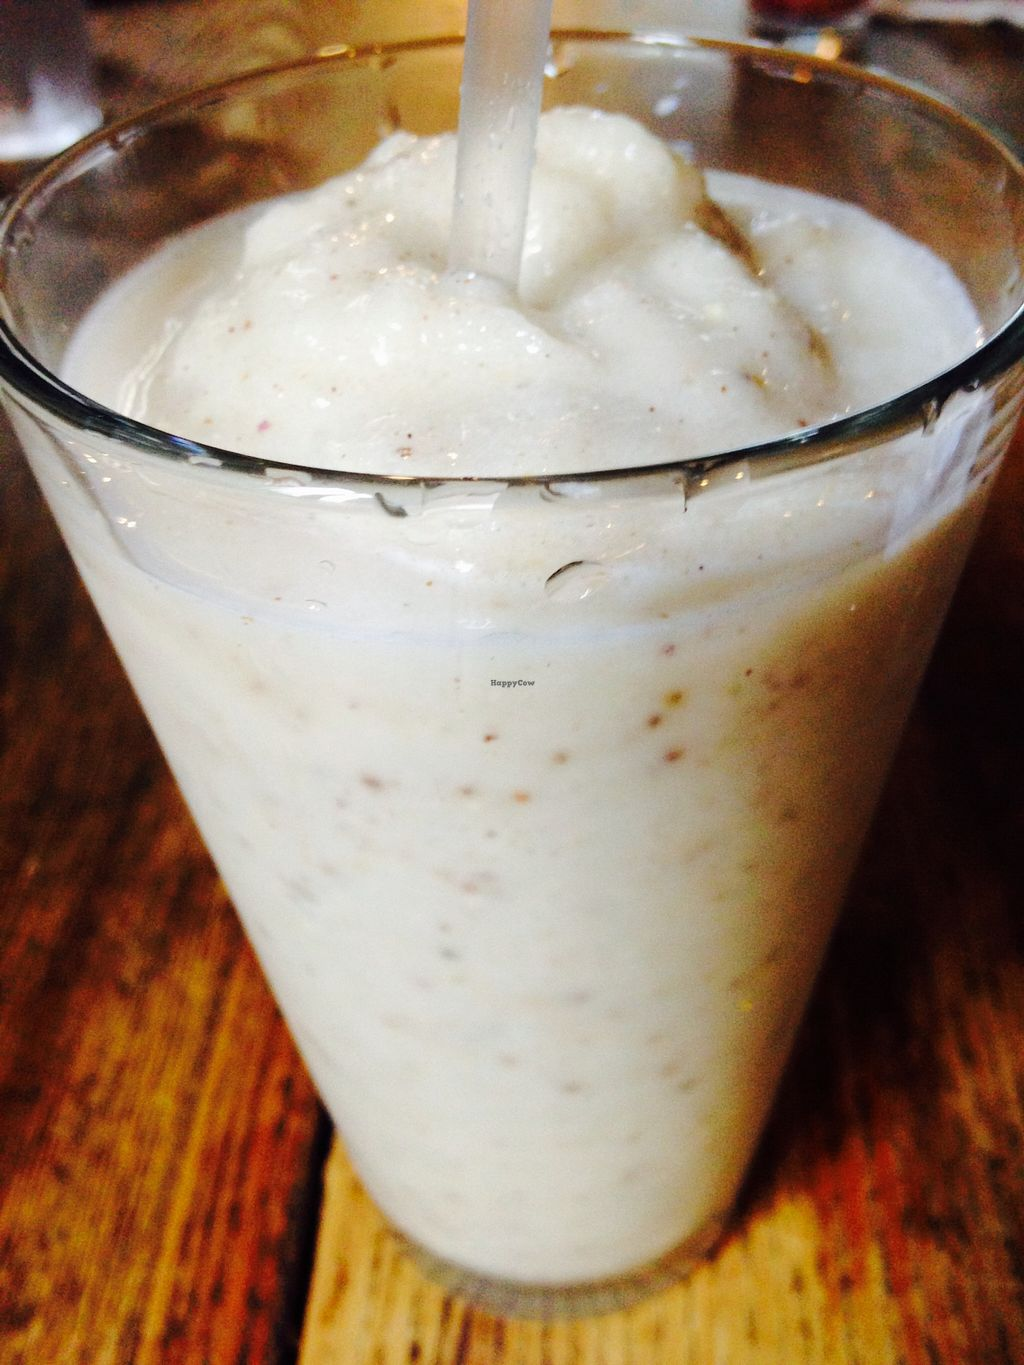 """Photo of Liquid Earth  by <a href=""""/members/profile/cookiem"""">cookiem</a> <br/>Rawmond joy smoothie <br/> October 26, 2015  - <a href='/contact/abuse/image/2038/122735'>Report</a>"""